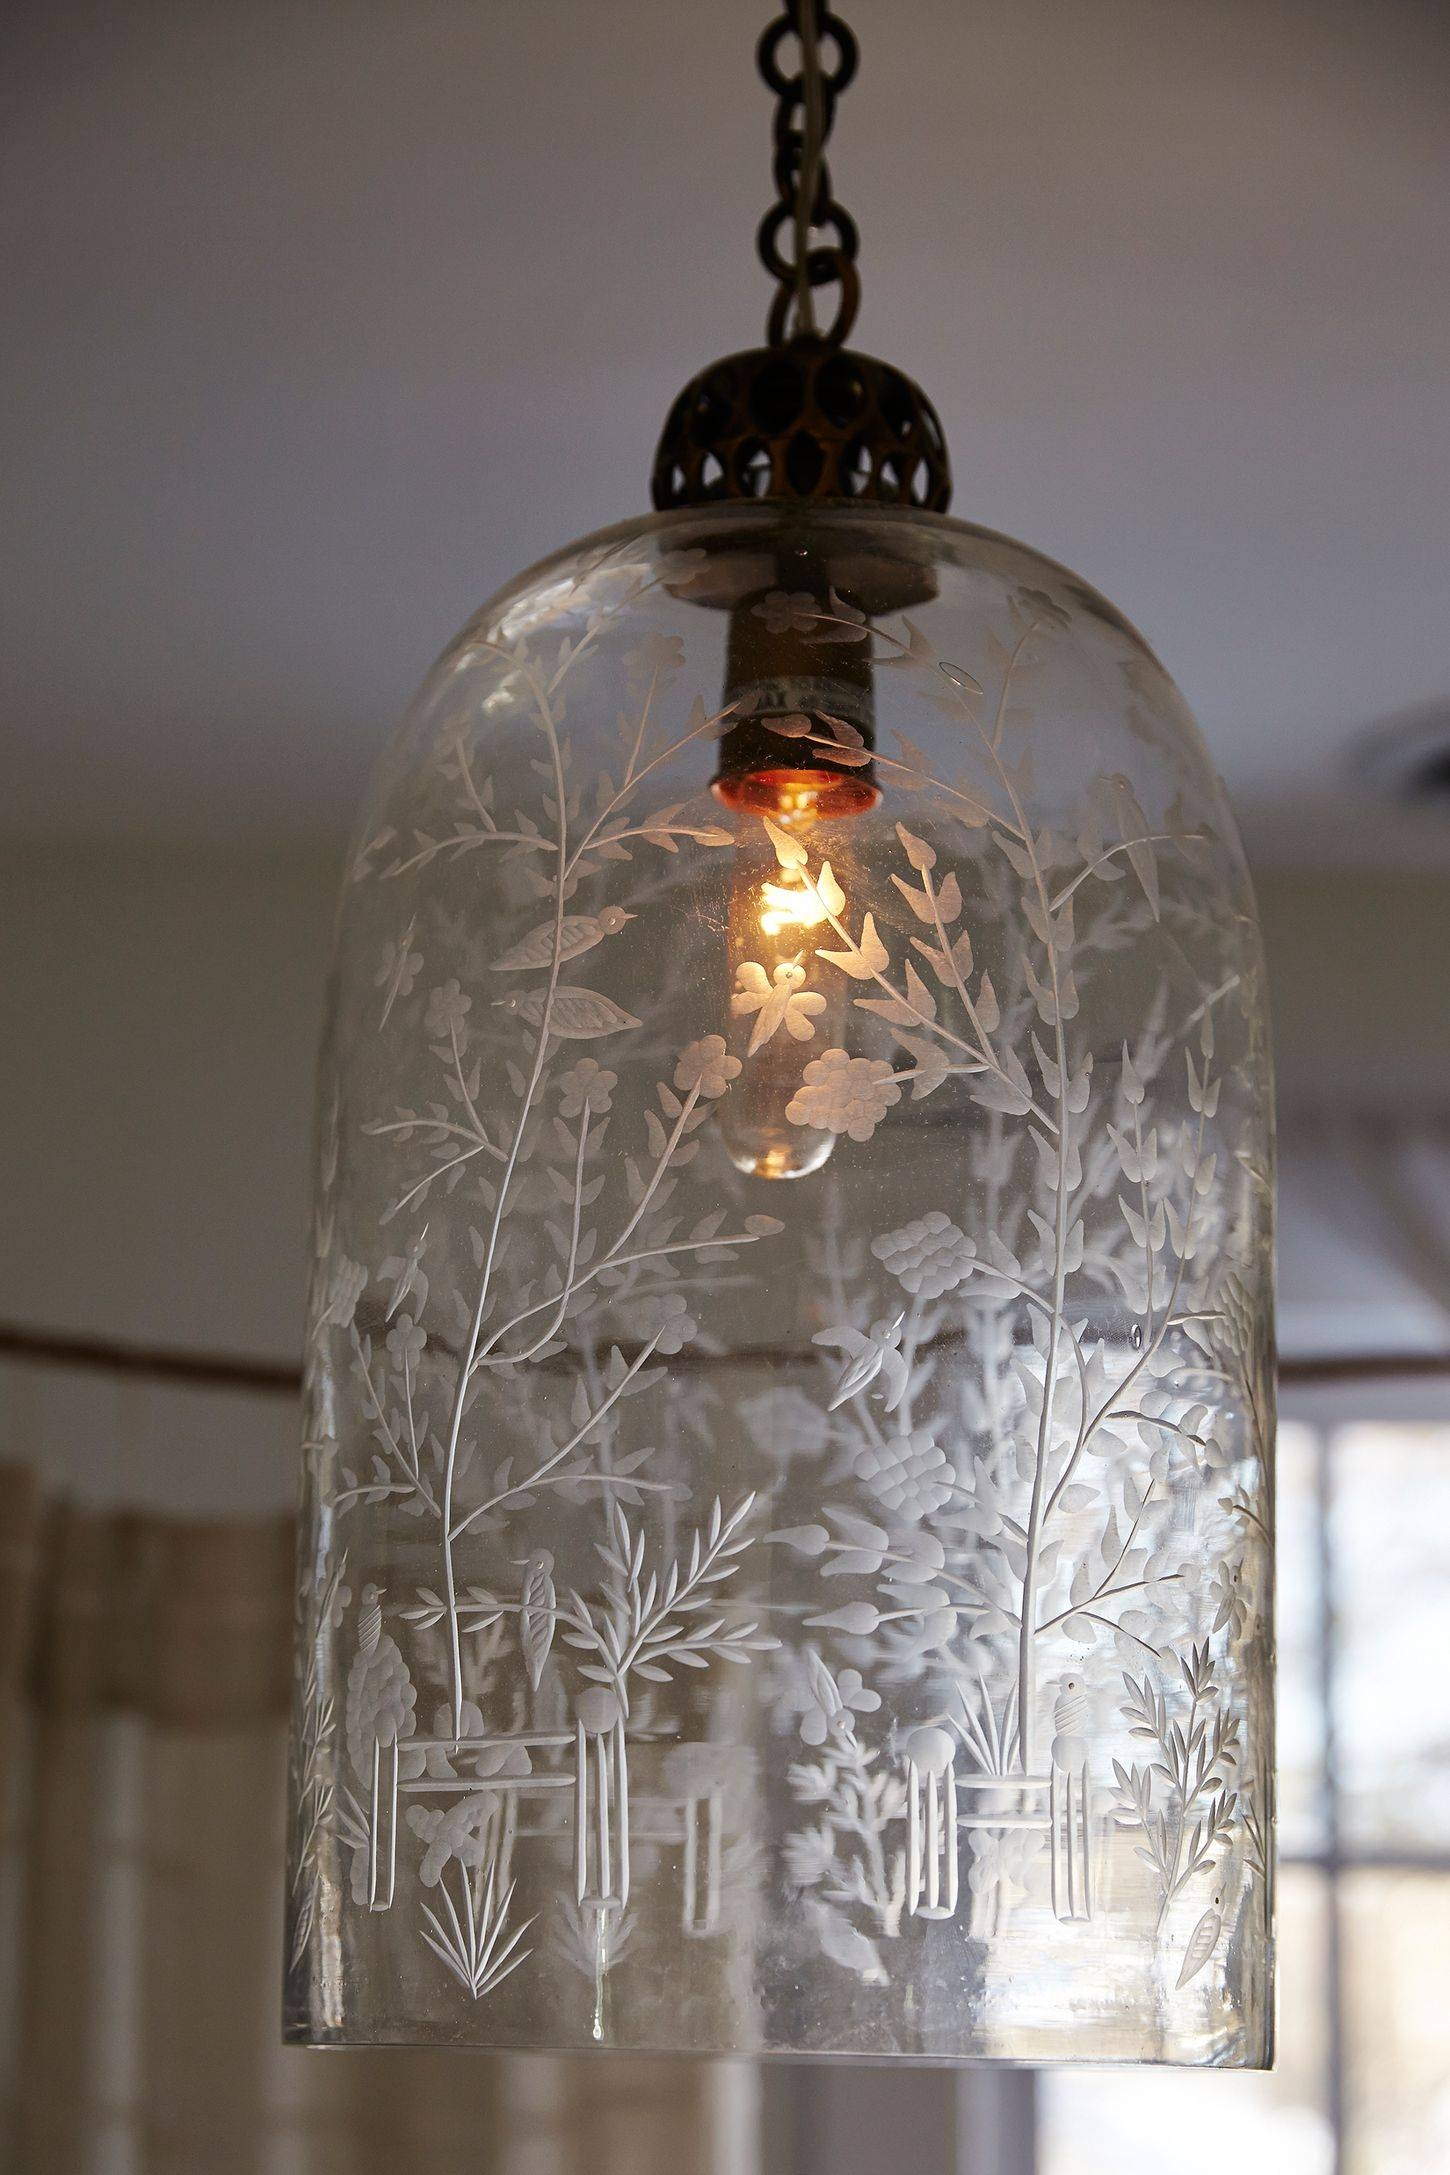 Lamp : Glass Light Shades Birdcage Pendant Light Glass Hanging Throughout Etched Glass Pendant Lights (View 8 of 15)